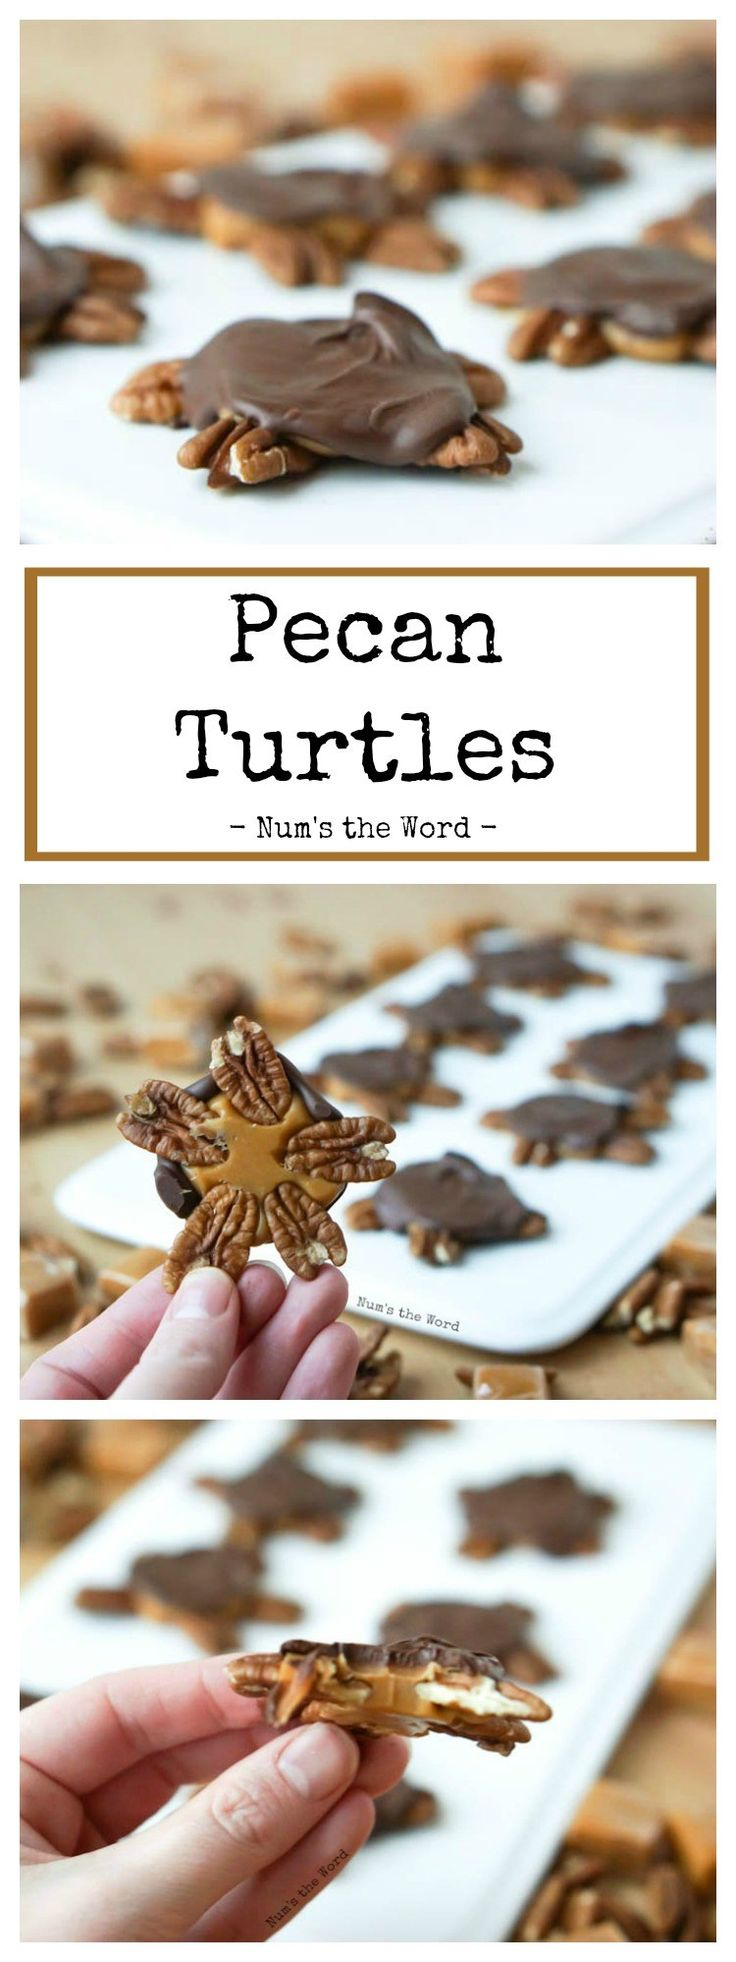 These Pecan Turtles are quick, easy and elegant. They are the perfect mix of sweet and salty and make a great thank you or neighbor gift!